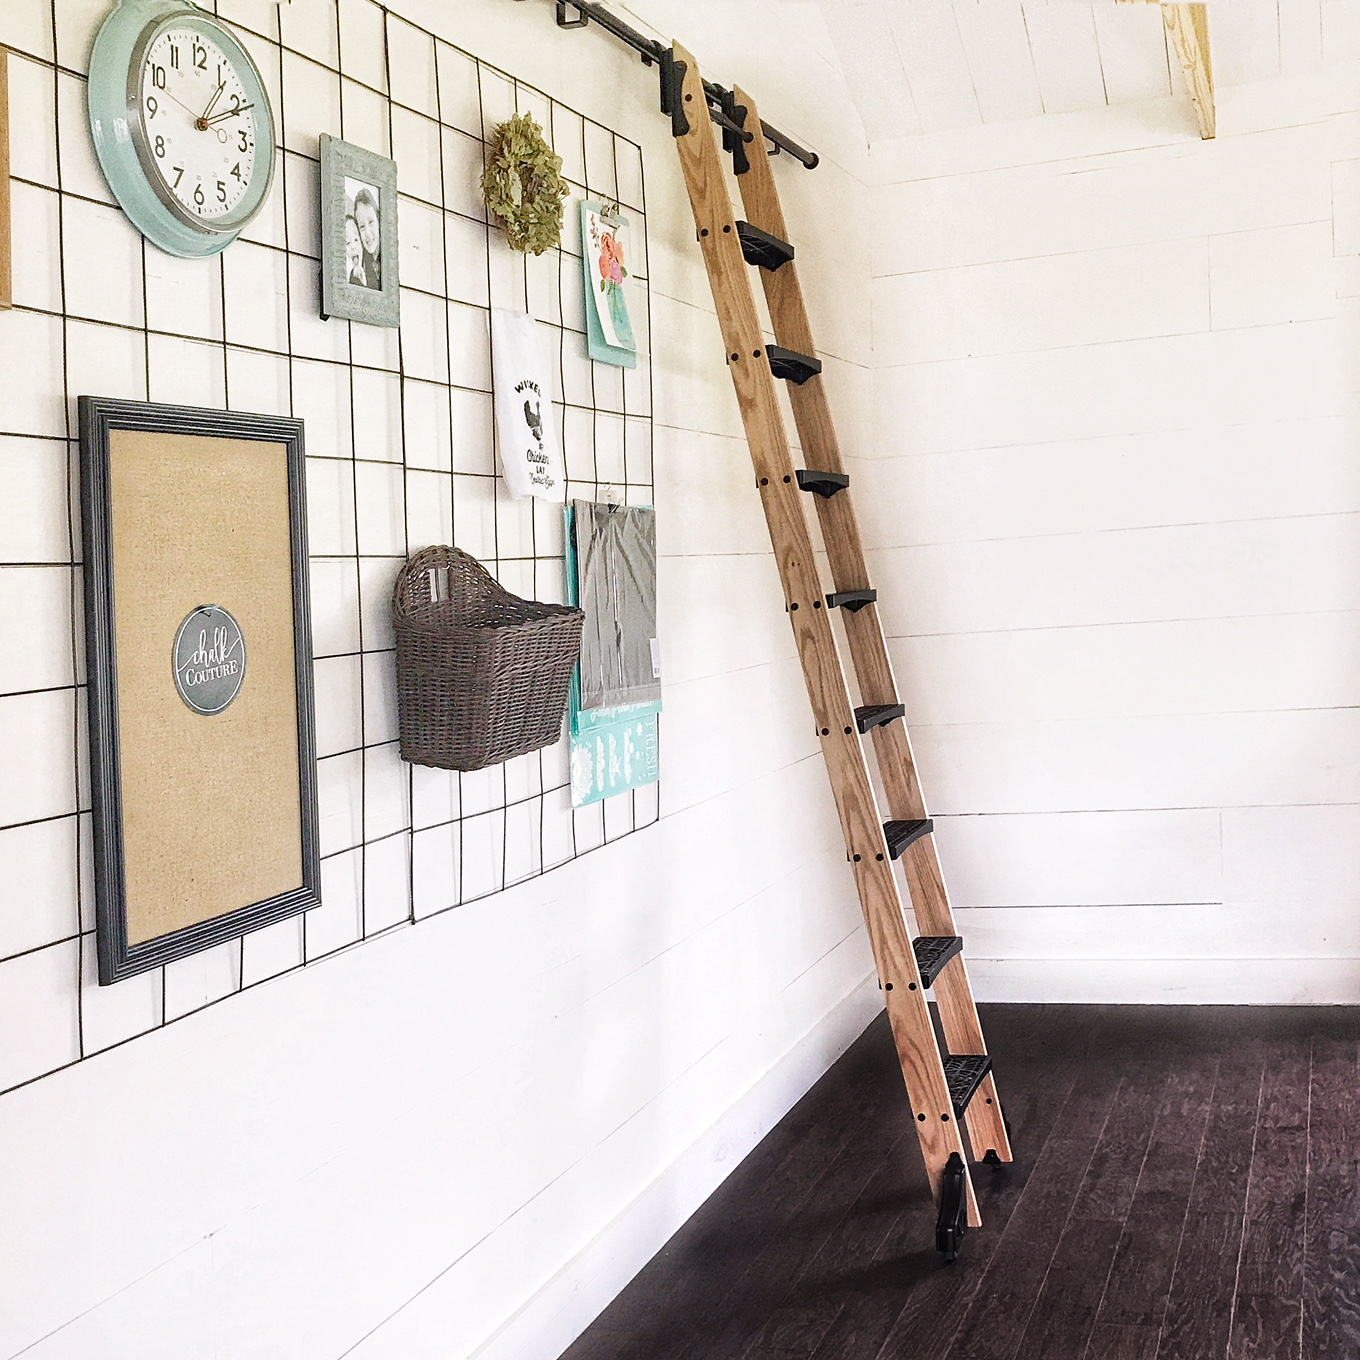 How To Build A Library Ladder Step By Step In Depth Video